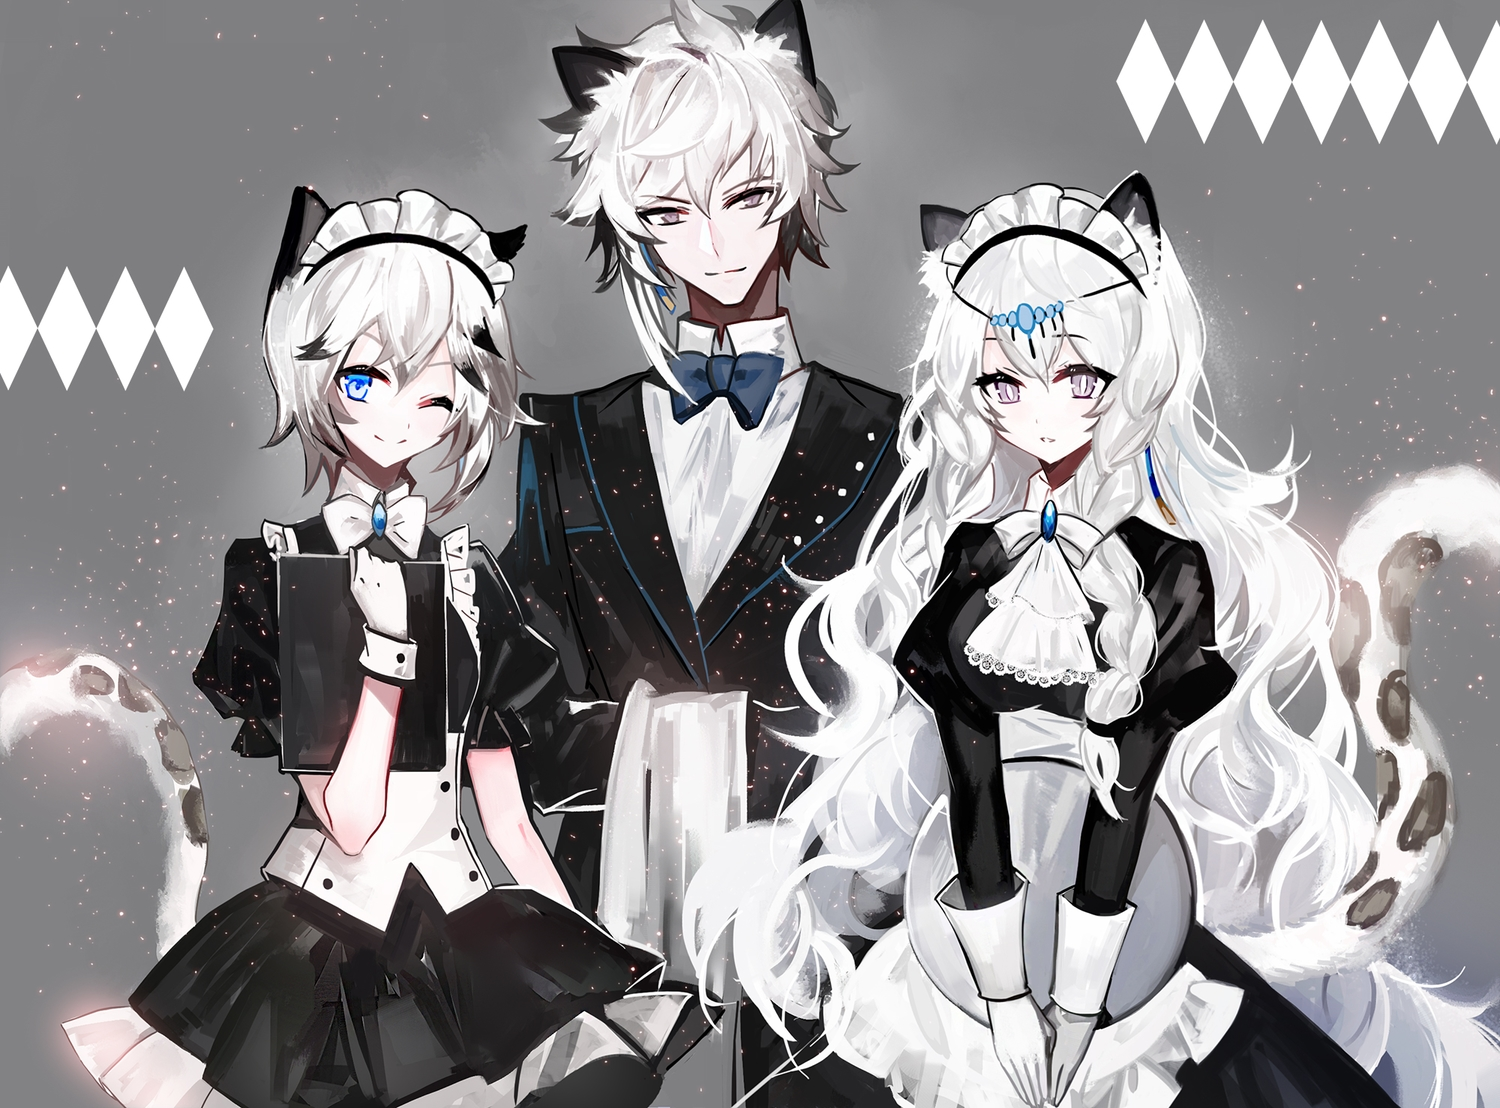 animal_ears apron aqua_eyes arknights bow braids catgirl cliffheart_(arknights) gray gray_eyes headdress long_hair maid male moemoe3345 pramanix_(arknights) short_hair silverash_(arknights) suit tail tie waitress white_hair wink wristwear